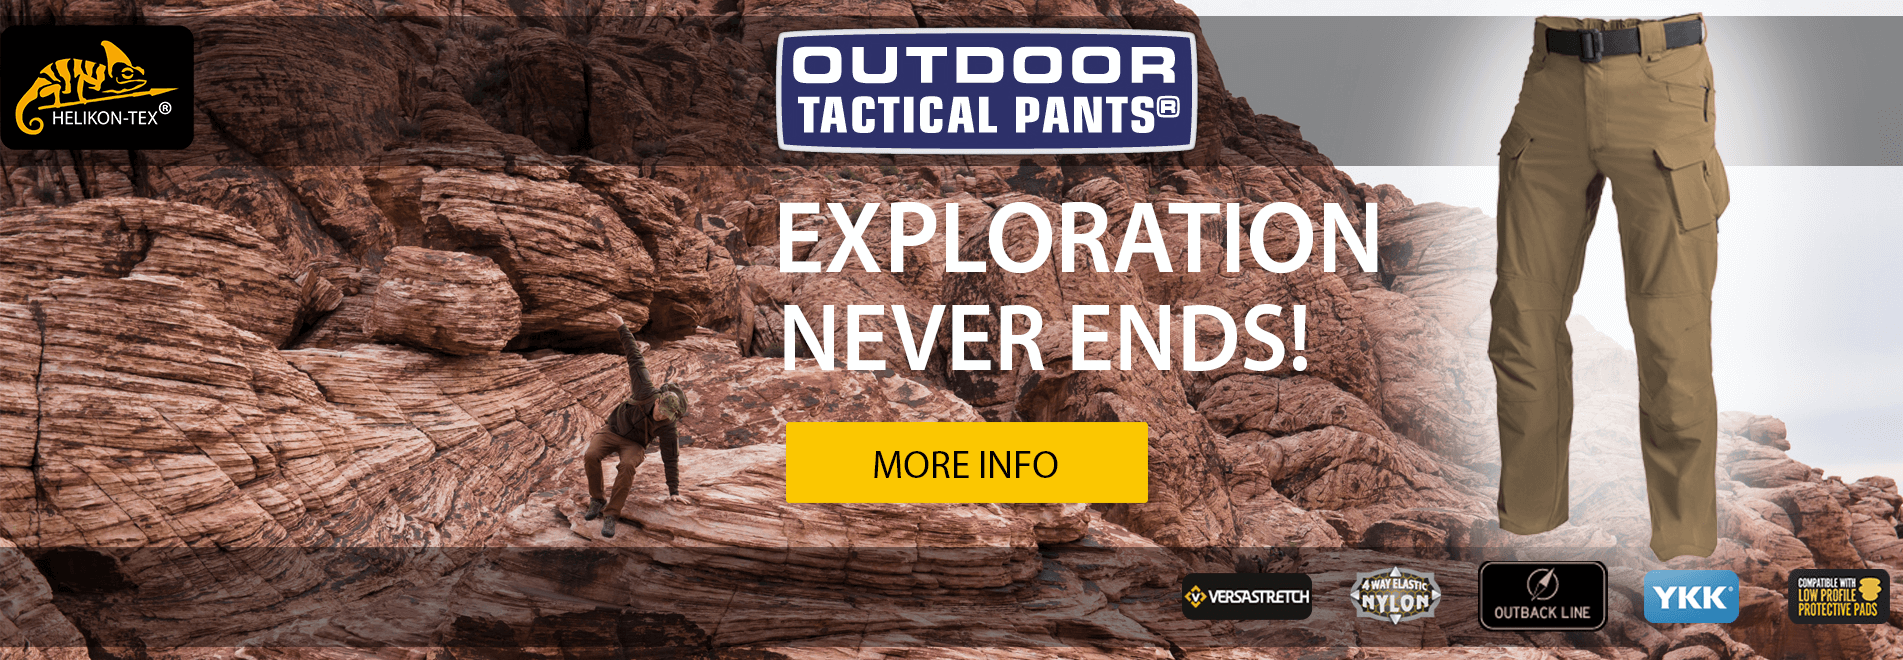 Spodnie Helikon OTP Outdoor Tactical Pants